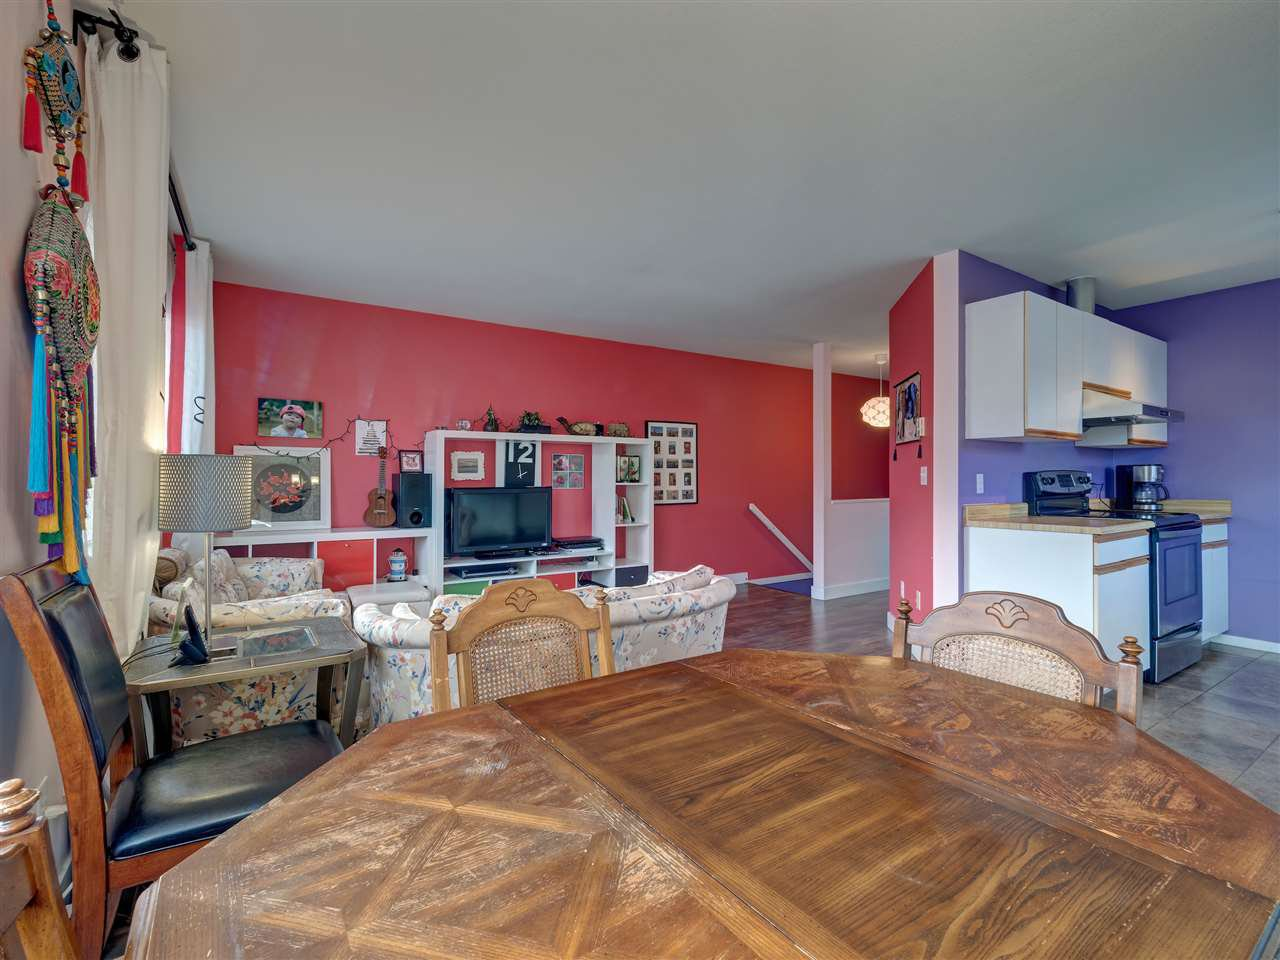 Photo 5: Photos: 19 5761 WHARF Avenue in Sechelt: Sechelt District Townhouse for sale (Sunshine Coast)  : MLS®# R2428590